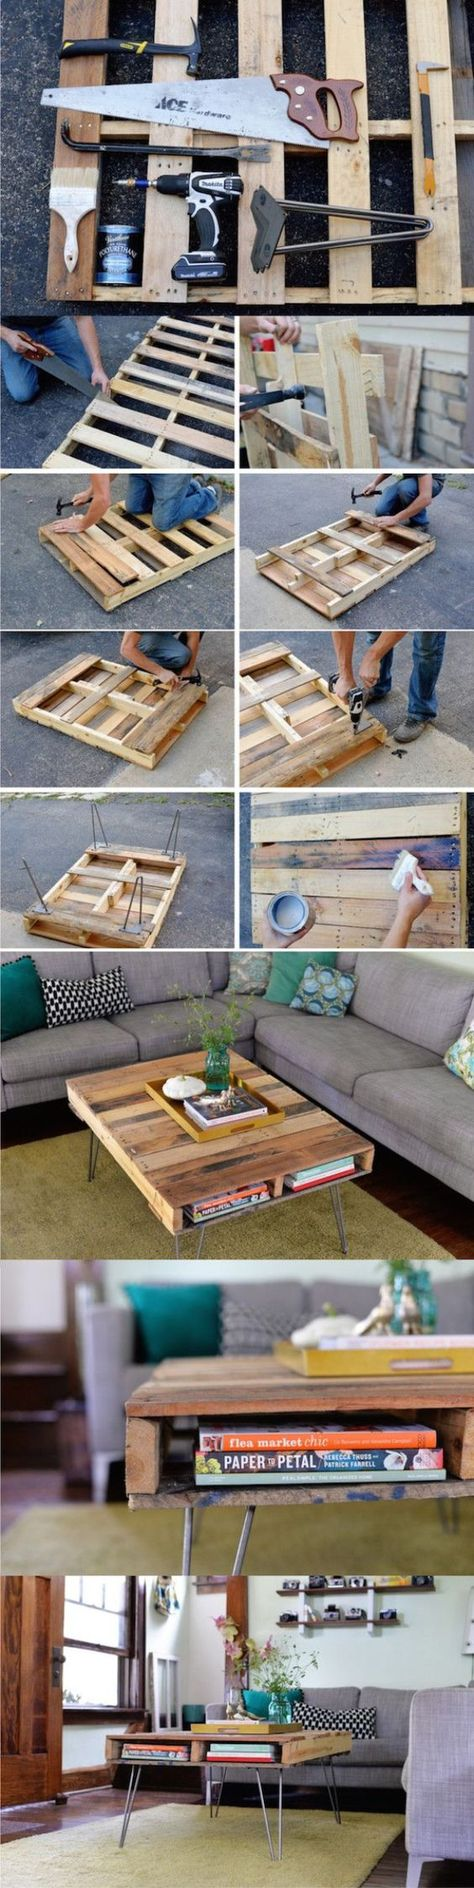 Easy DIY Home Decor Projects| DIY Pallet Furniture Tutorial | Cheap Coffee Table Ideas | DIY Projects and Crafts by DIY JOY: